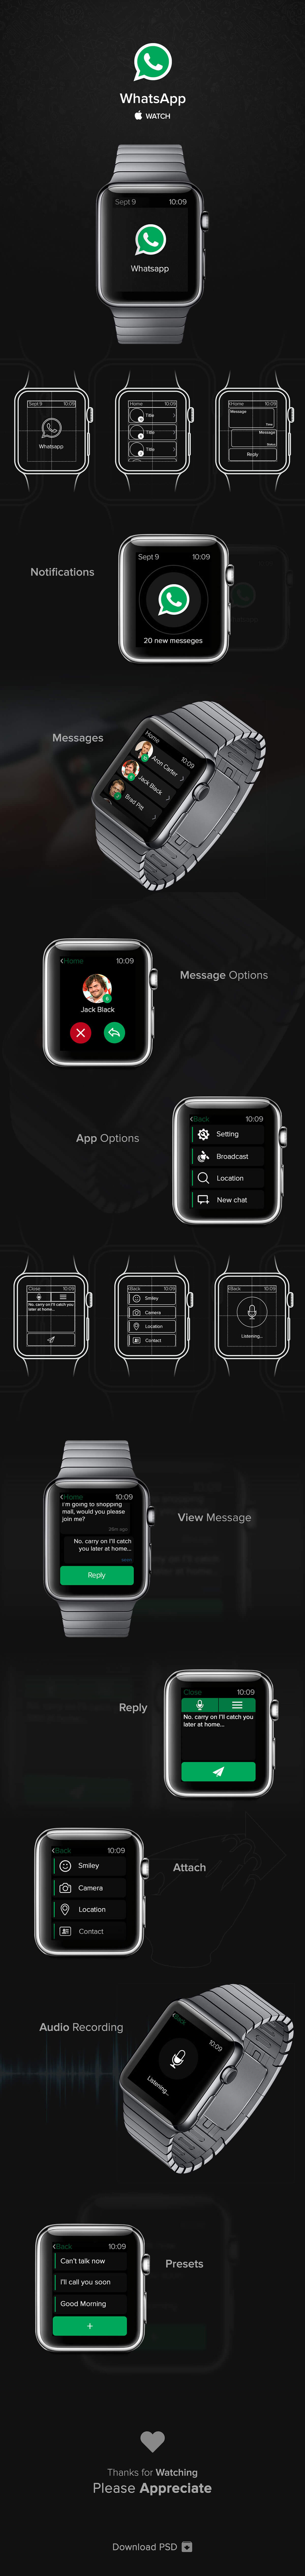 Apple Watch Free PSD Download